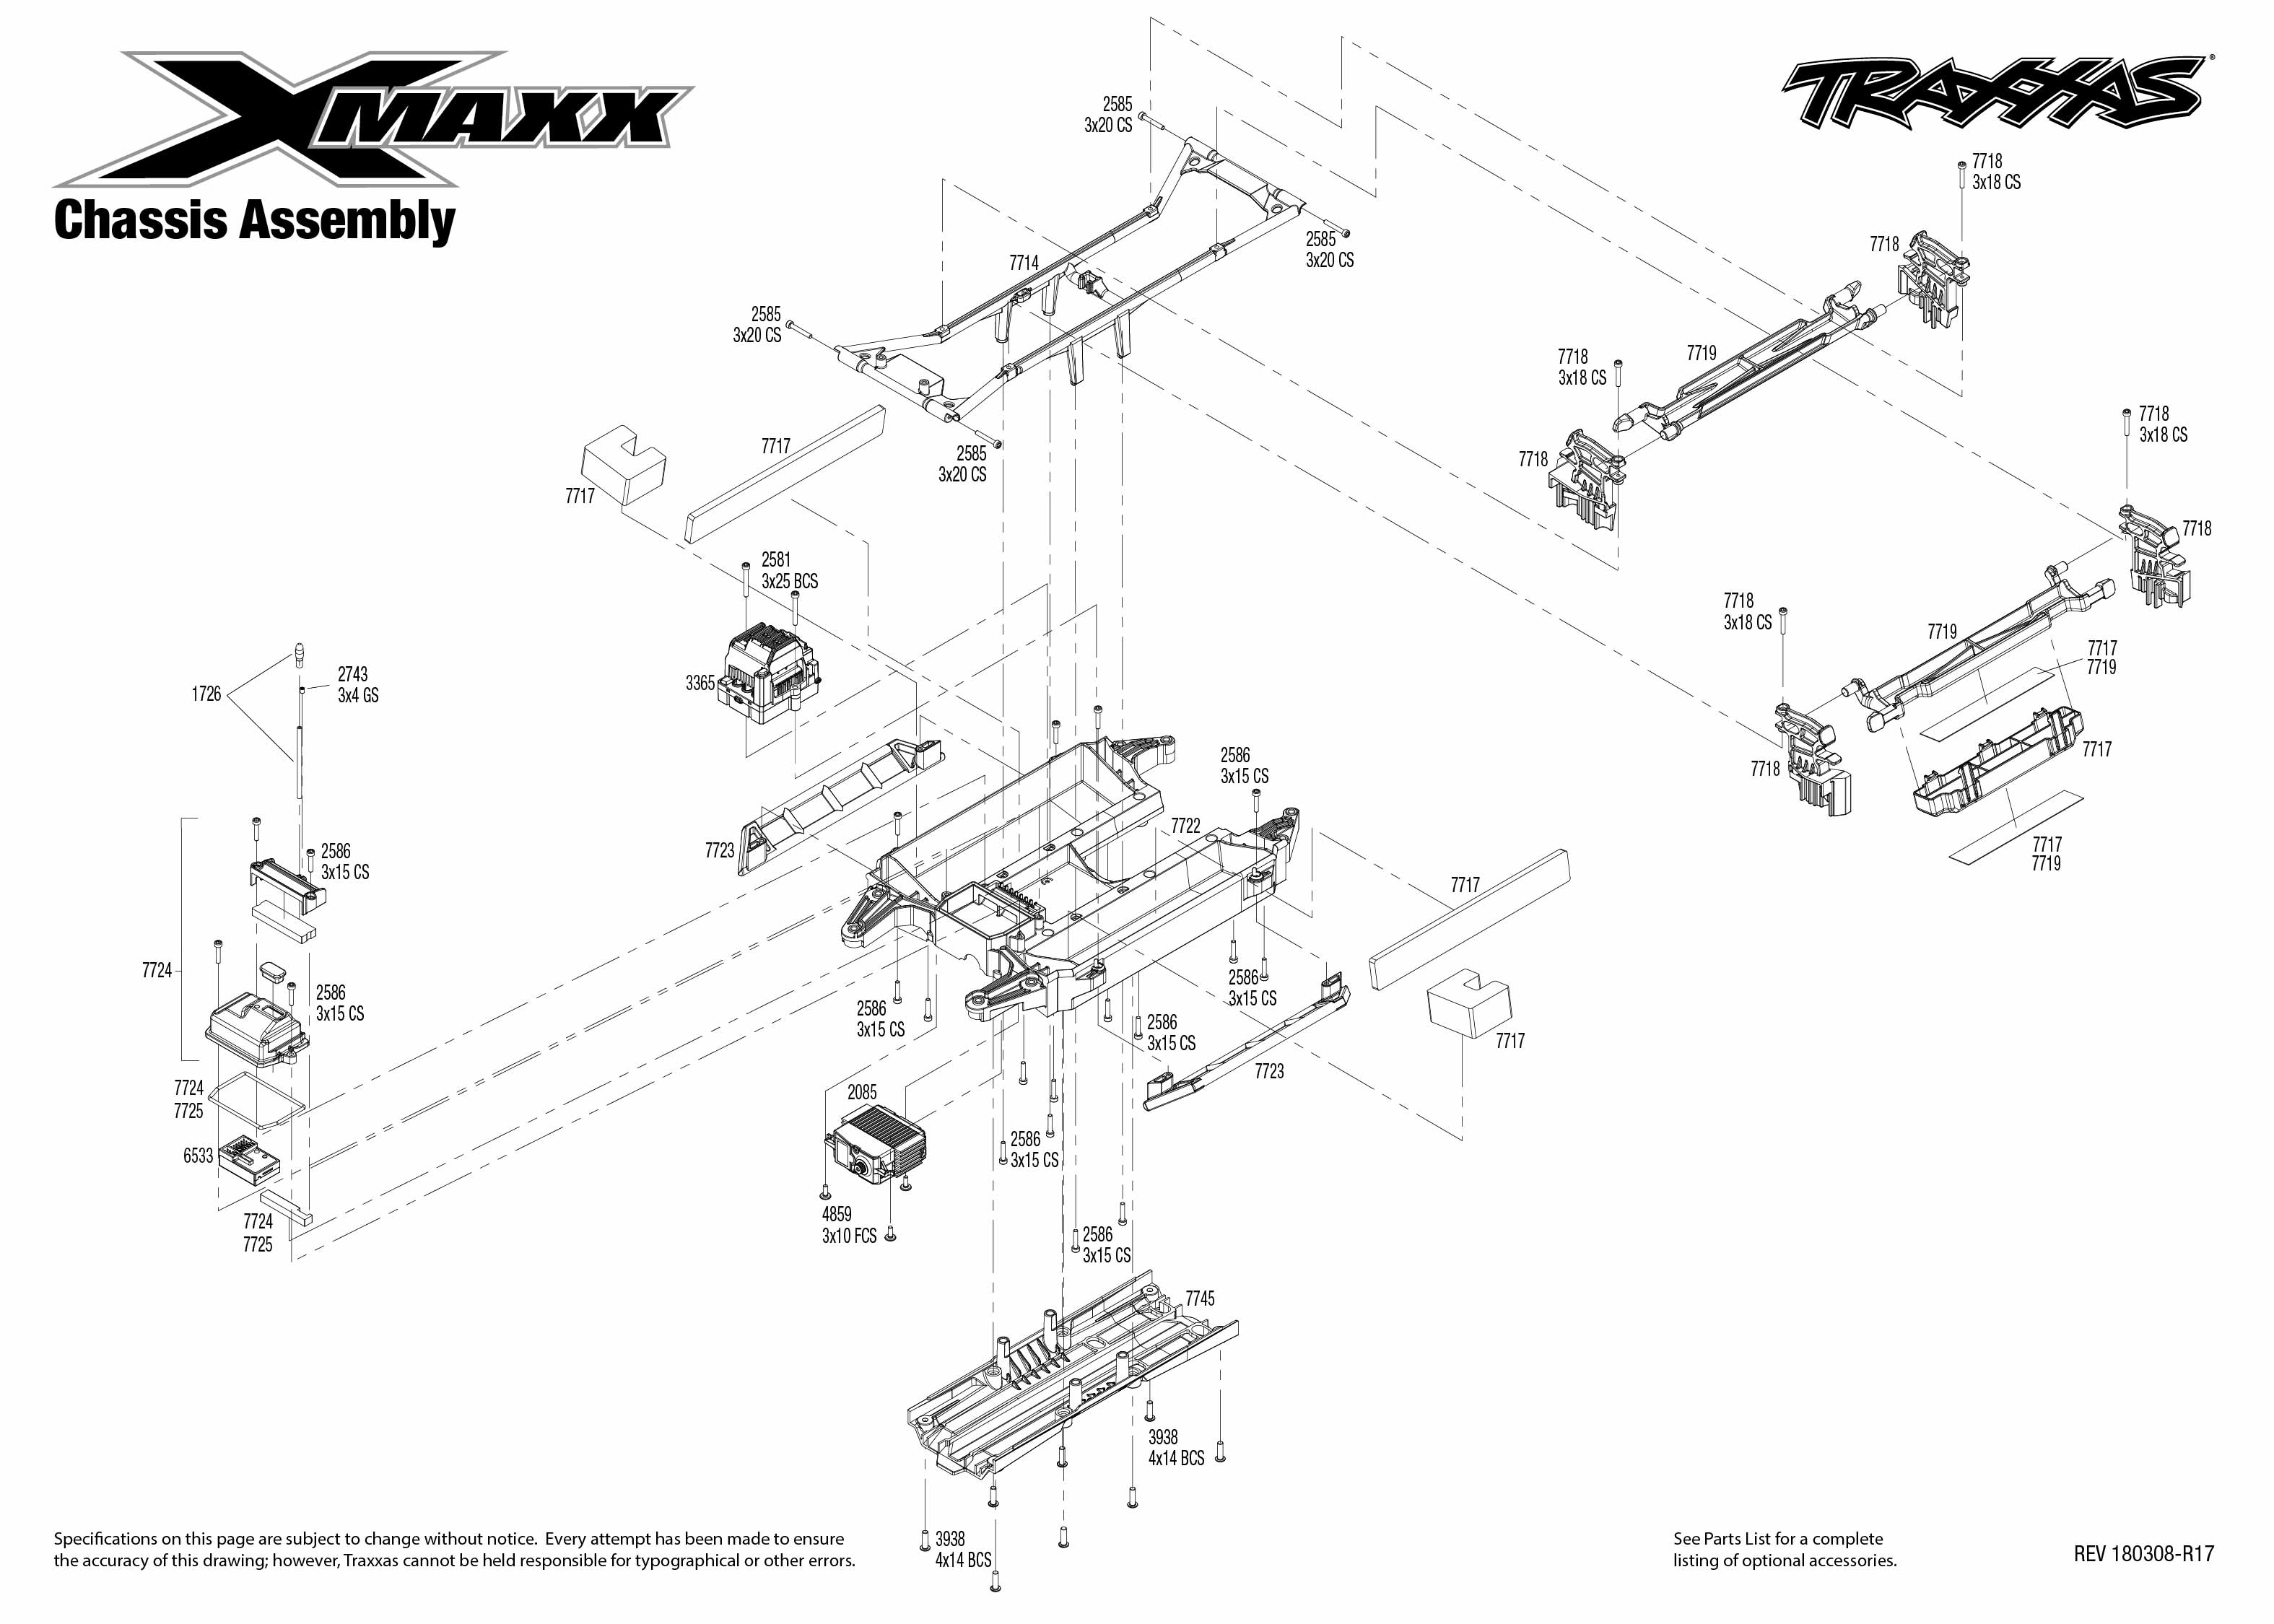 X Maxx 4 Chassis Assembly Exploded View